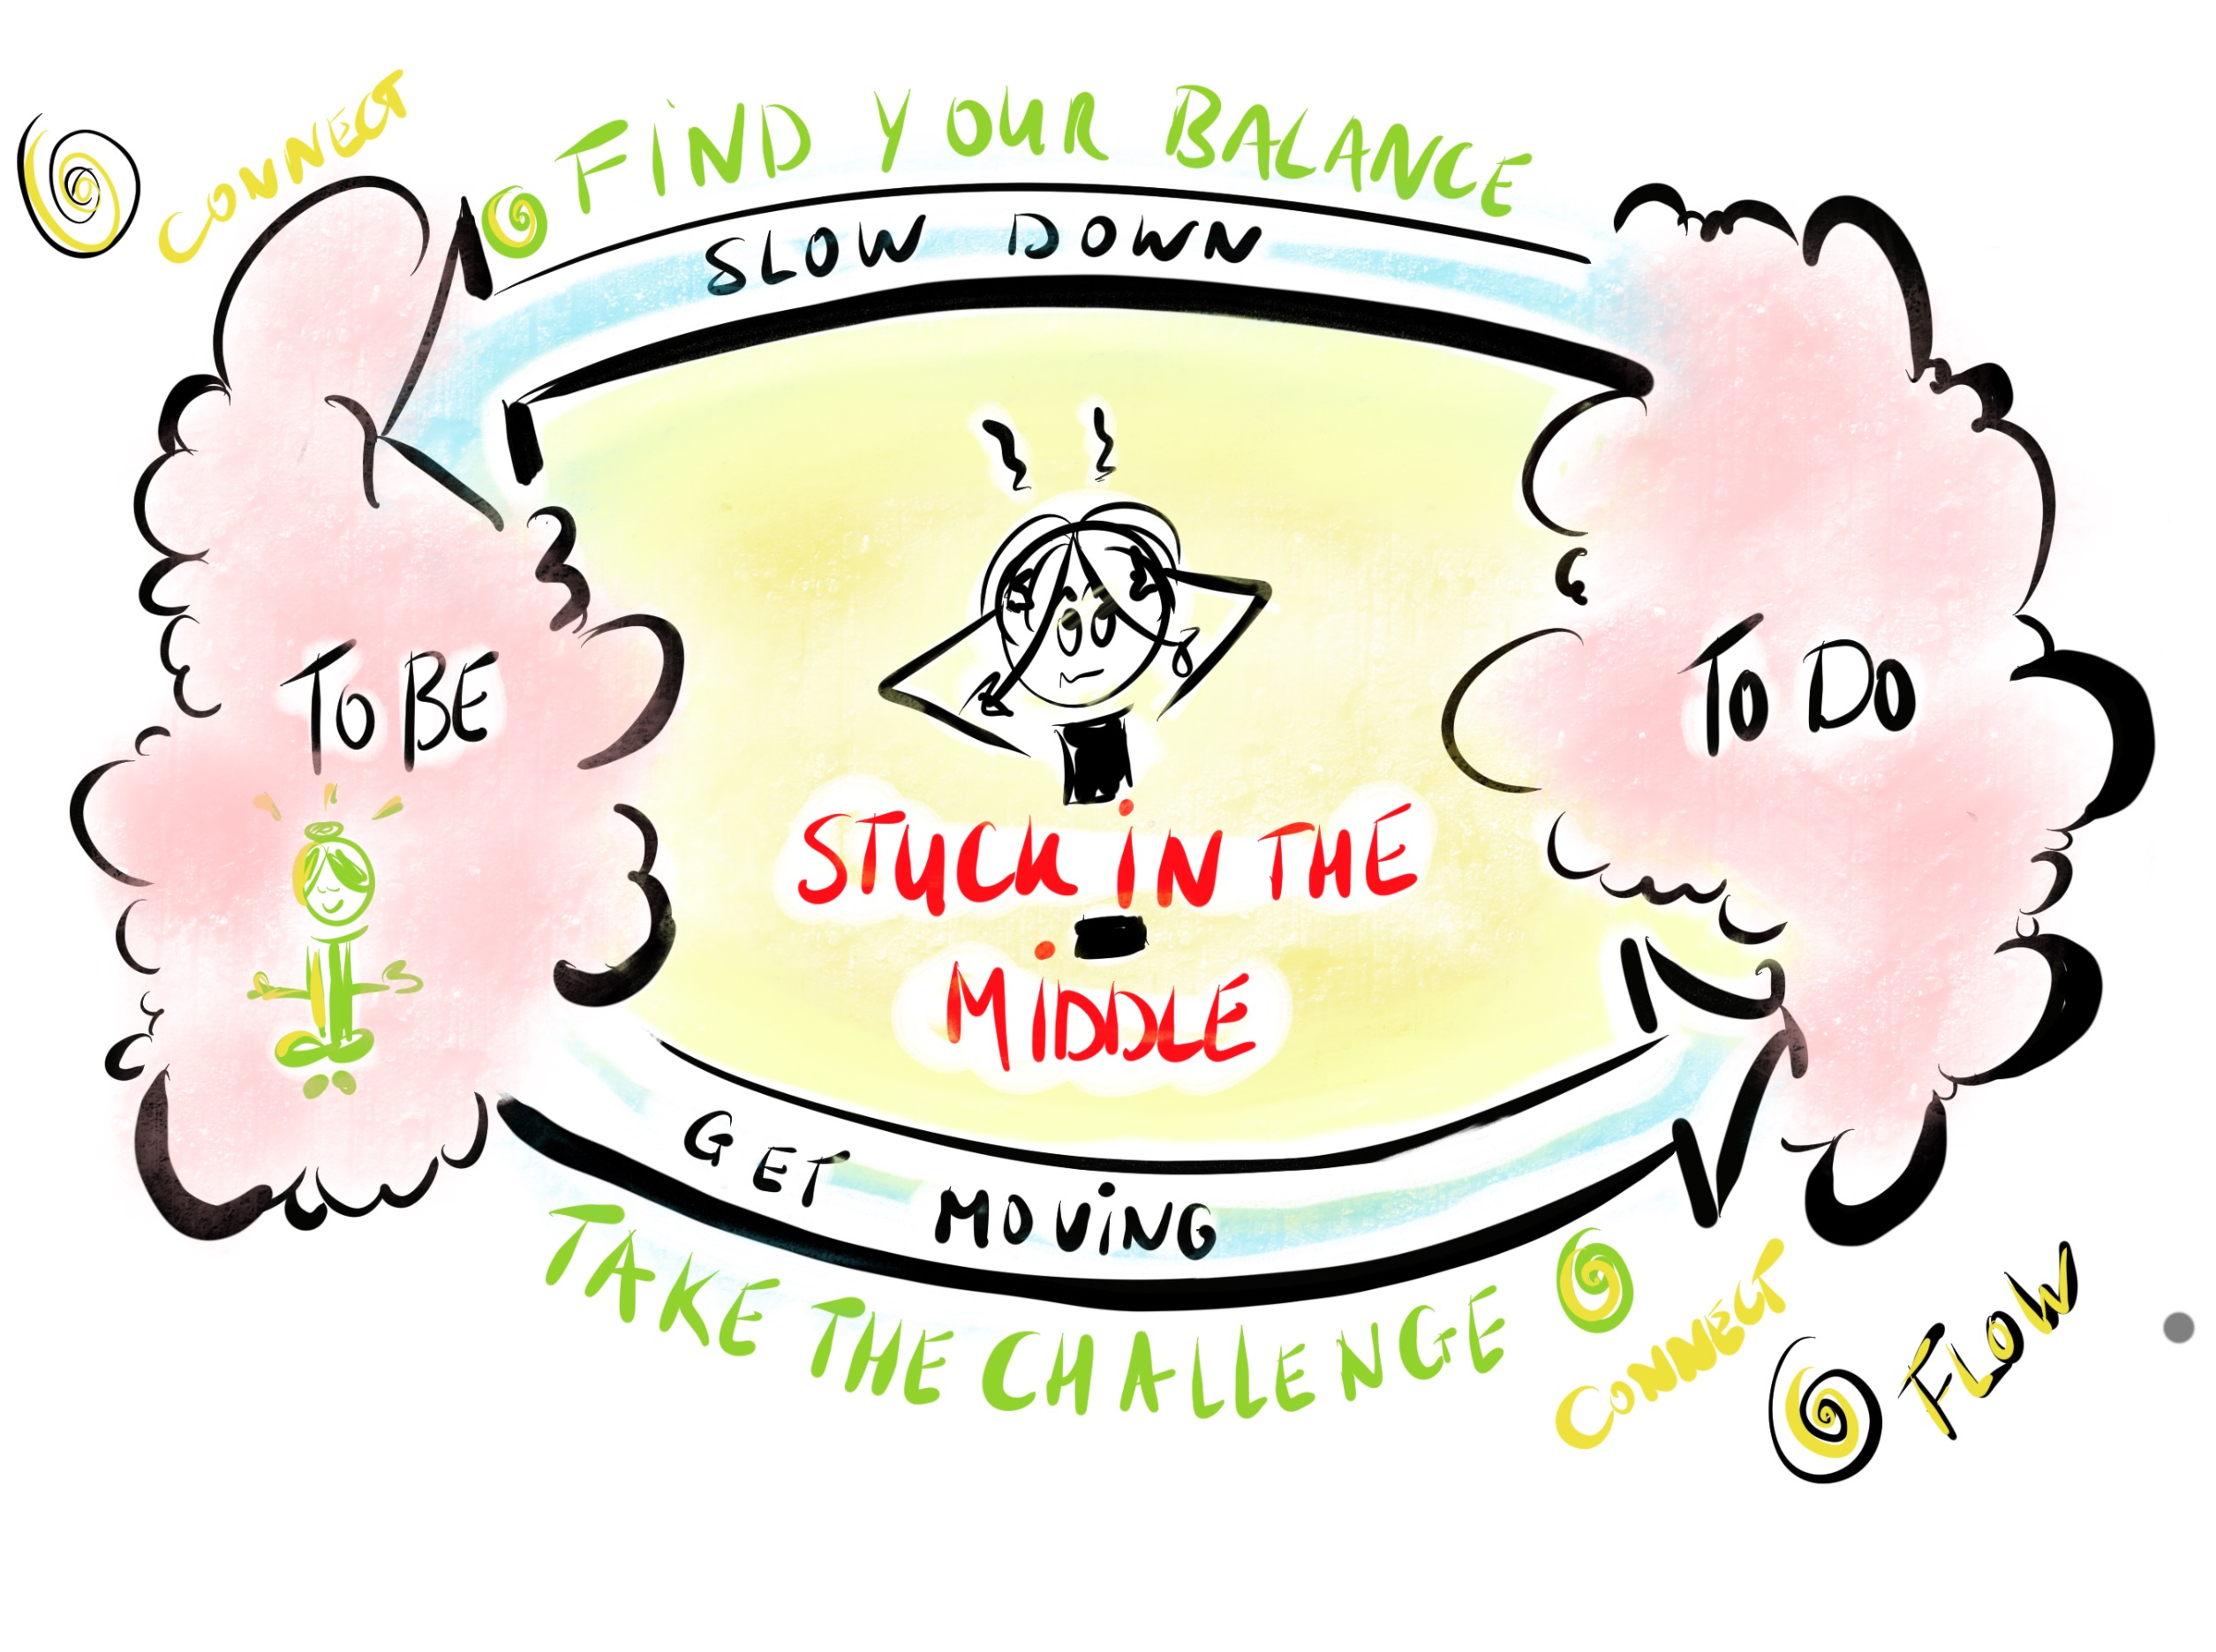 To Be To Do - Slow Down Get Moving - ZIJN in beweging